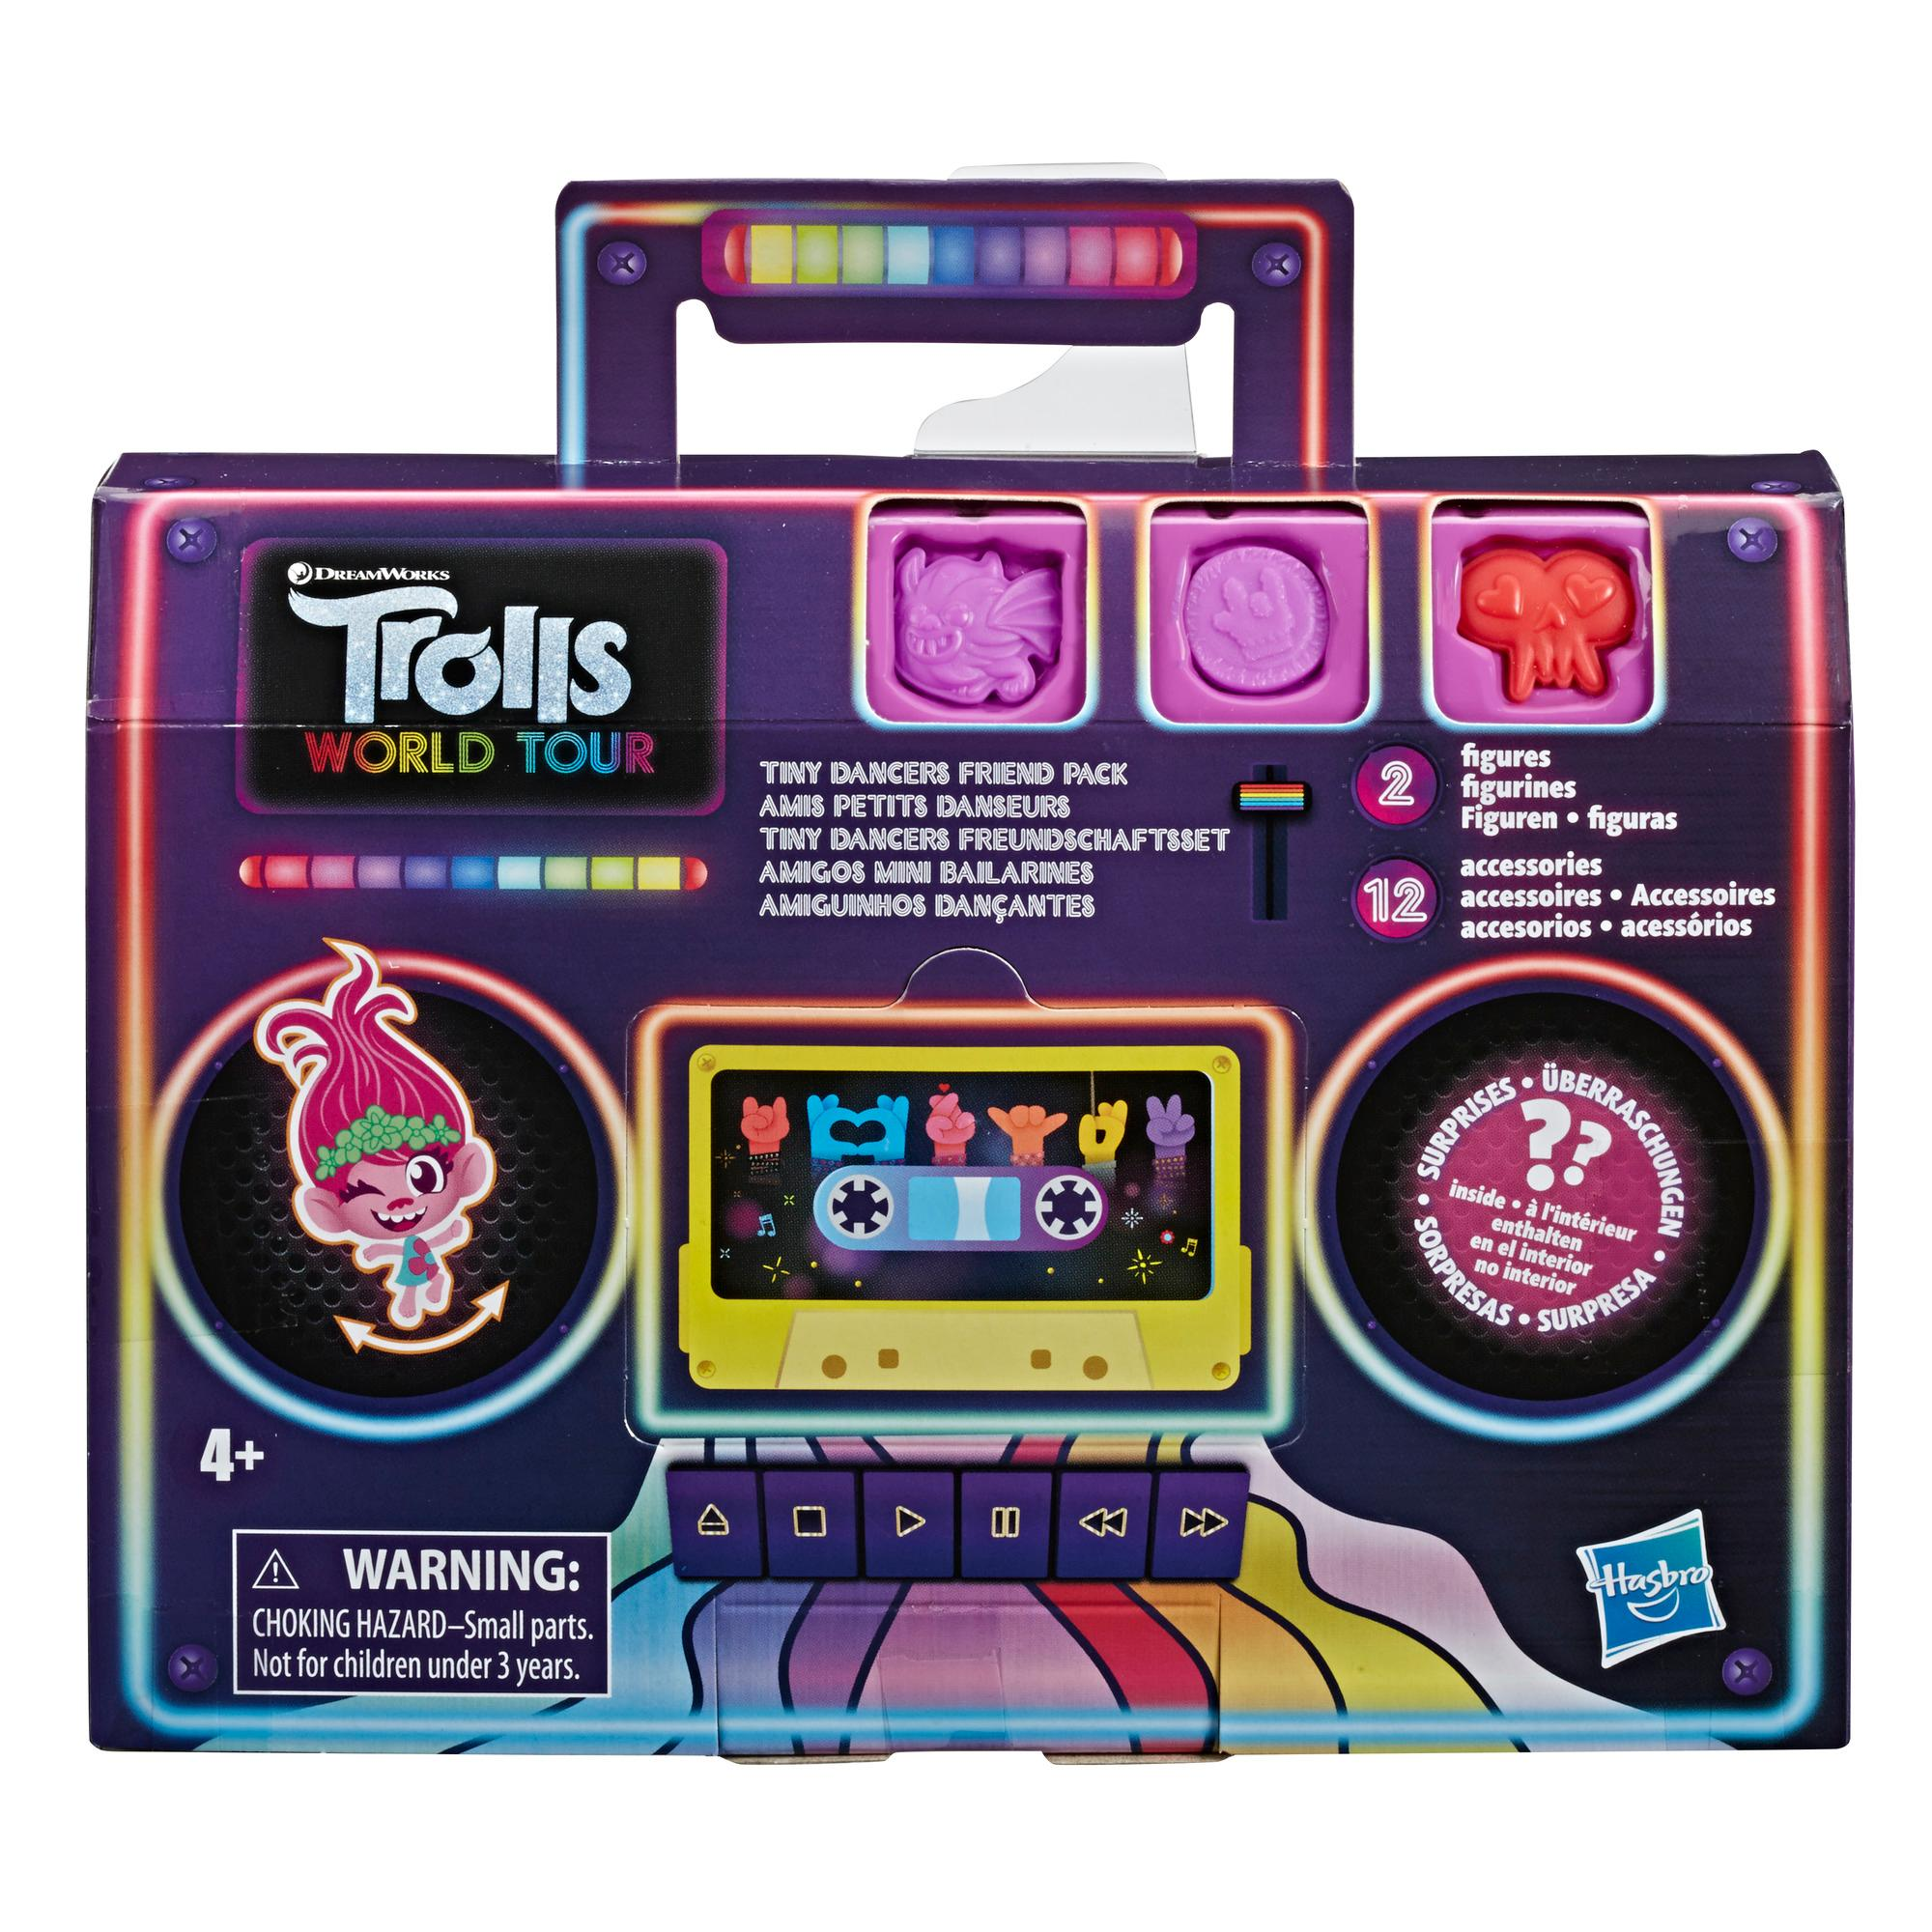 DreamWorks Trolls Tiny Dancers Friend Pack with 2 Tiny Dancers Figures, 2 bracelets, and 10 Charms, Inspired by the Movie Trolls World Tour